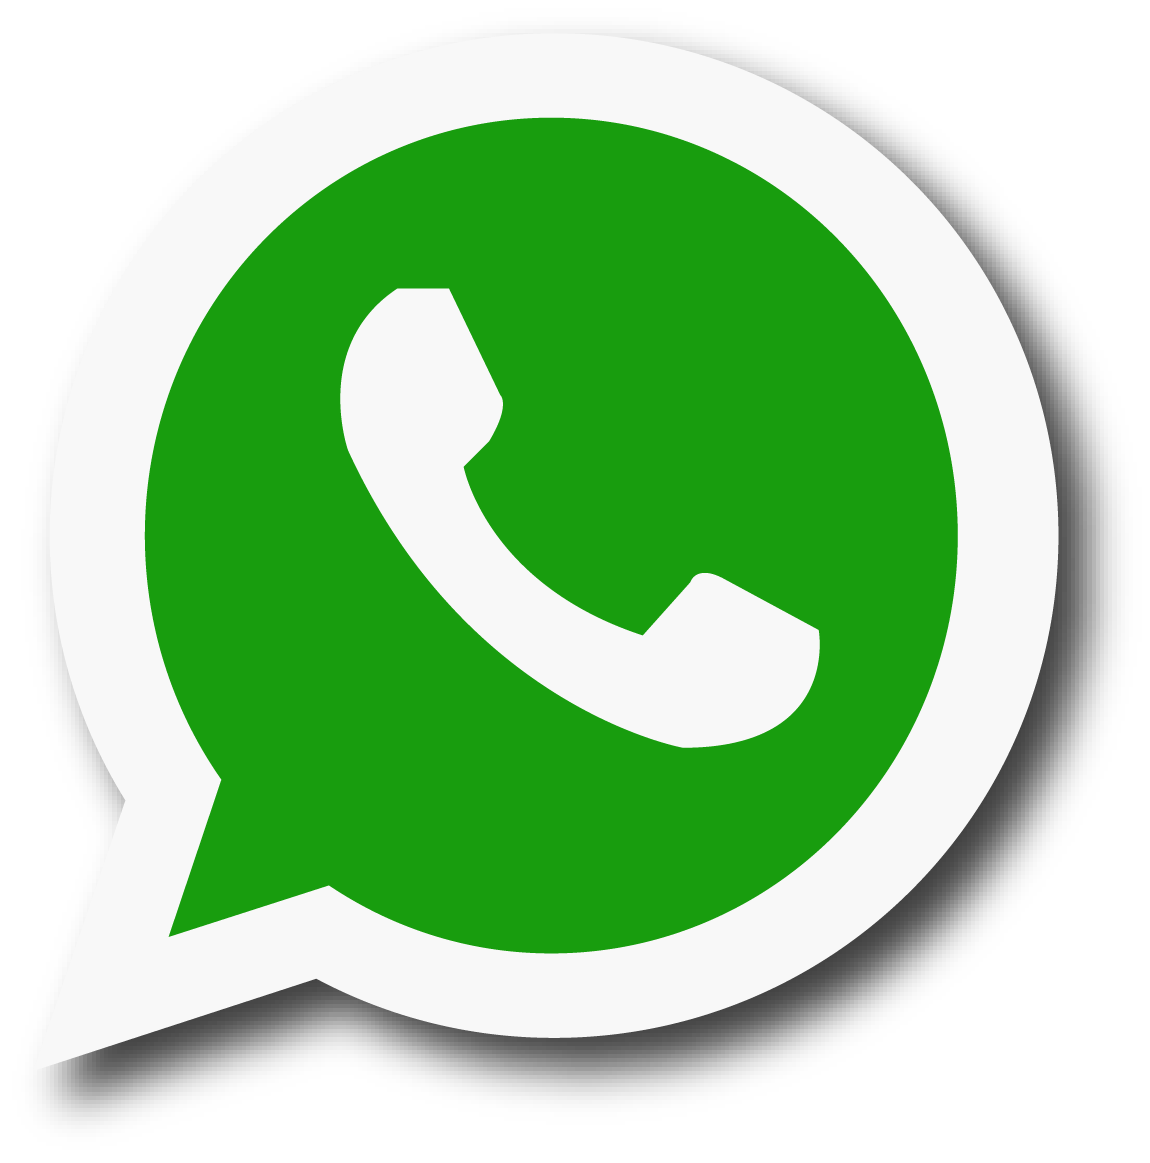 whatsapp logo transparente